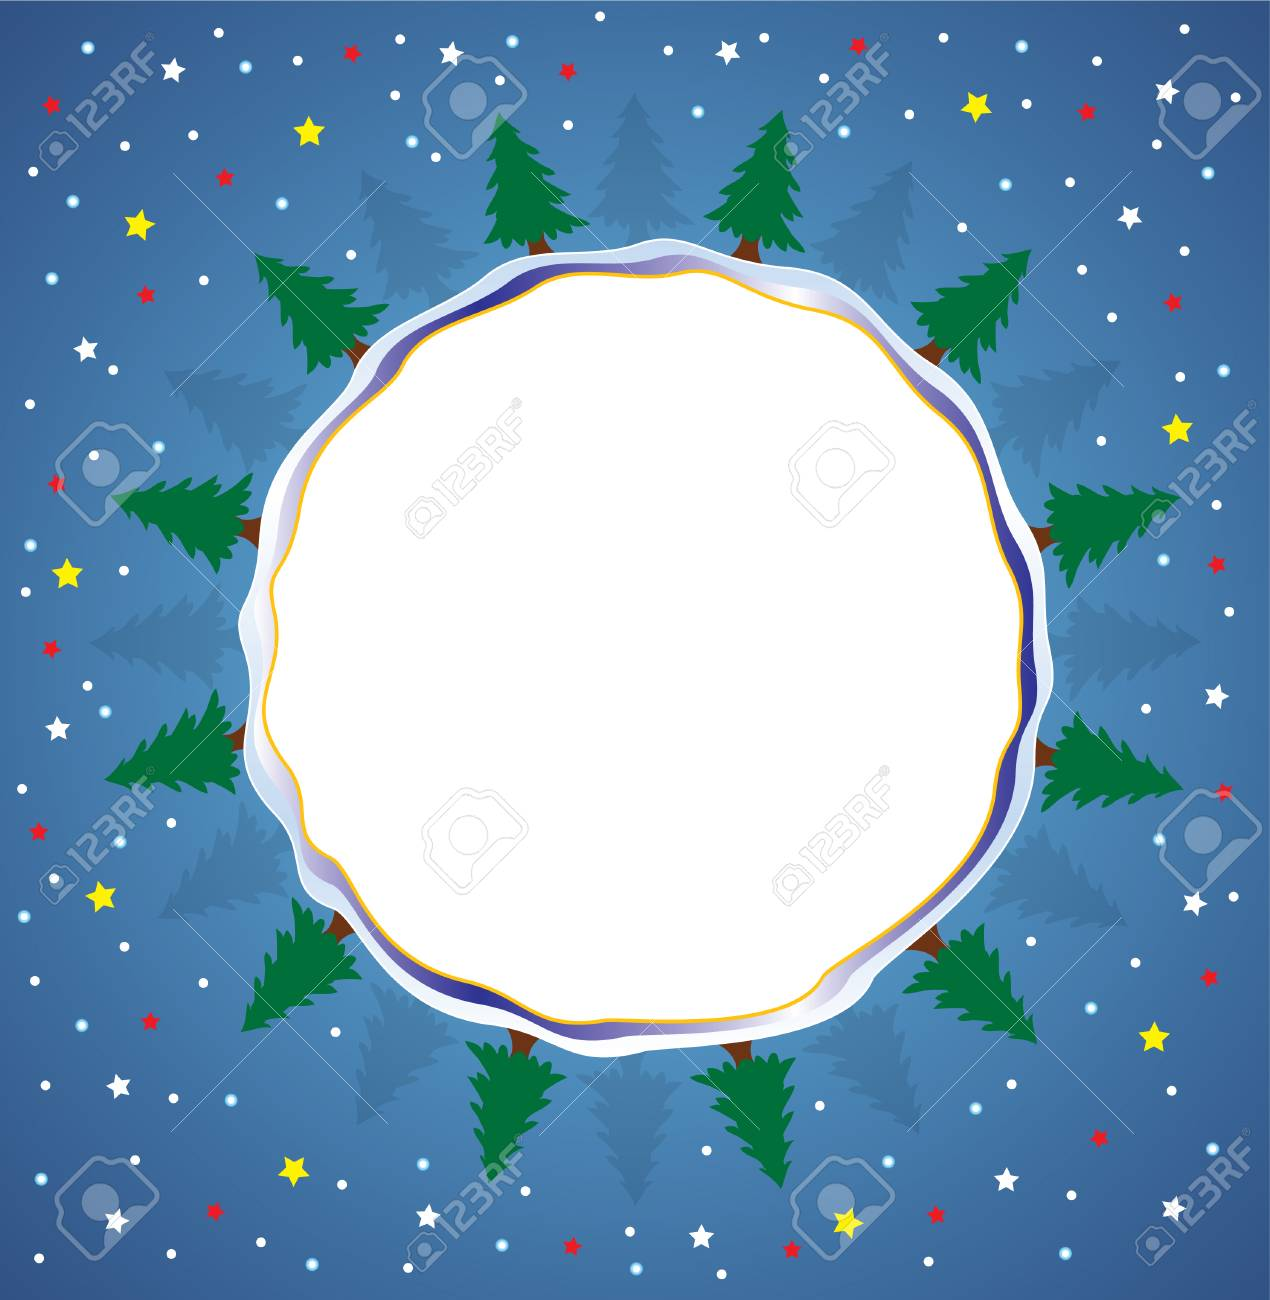 vector illustration of winter holiday background Stock Vector - 5865540